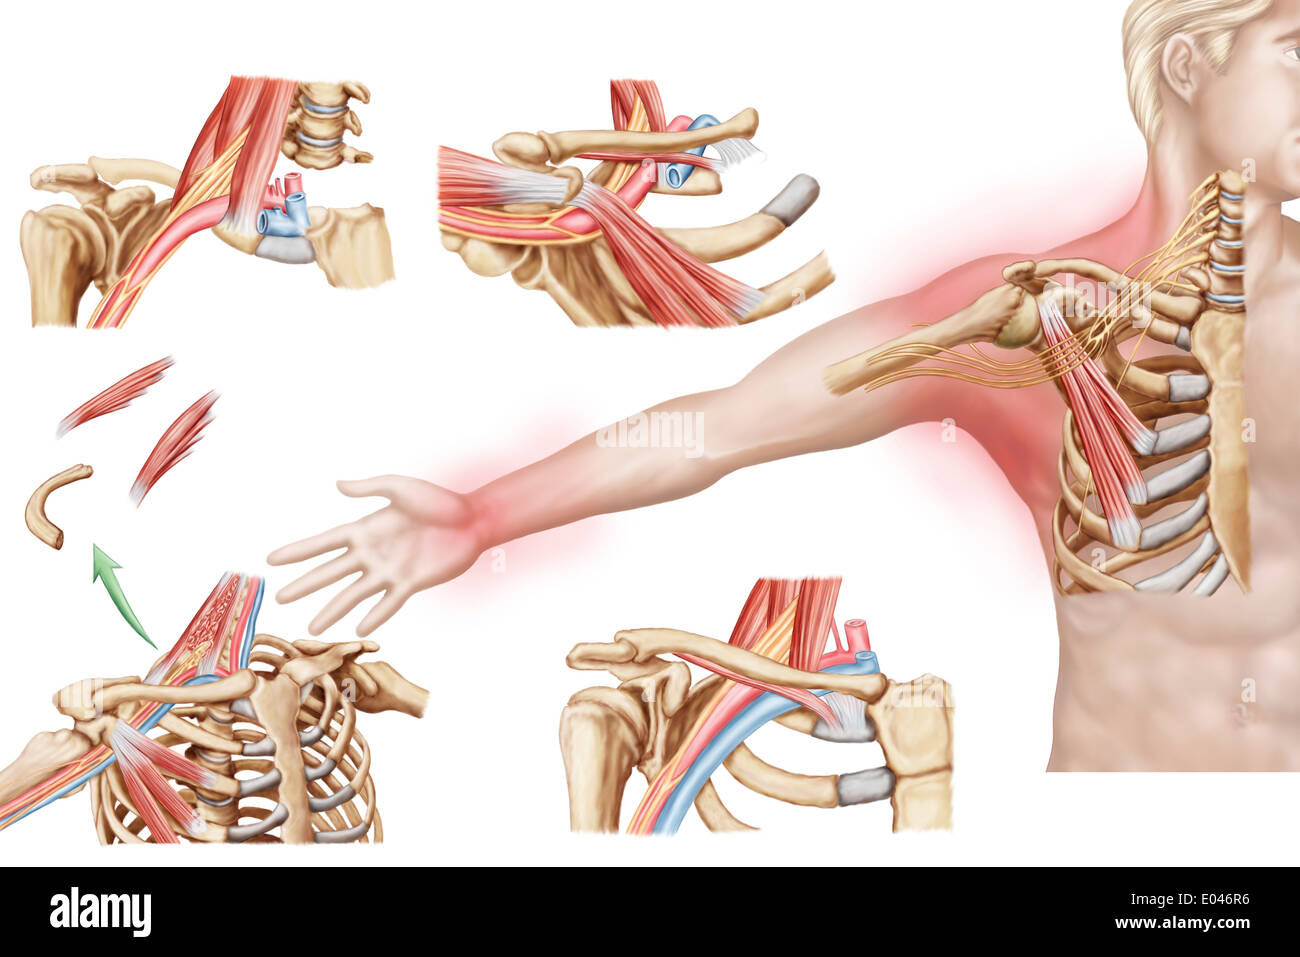 Medical illustration detailing thoracic outlet syndrome Stock Photo ...